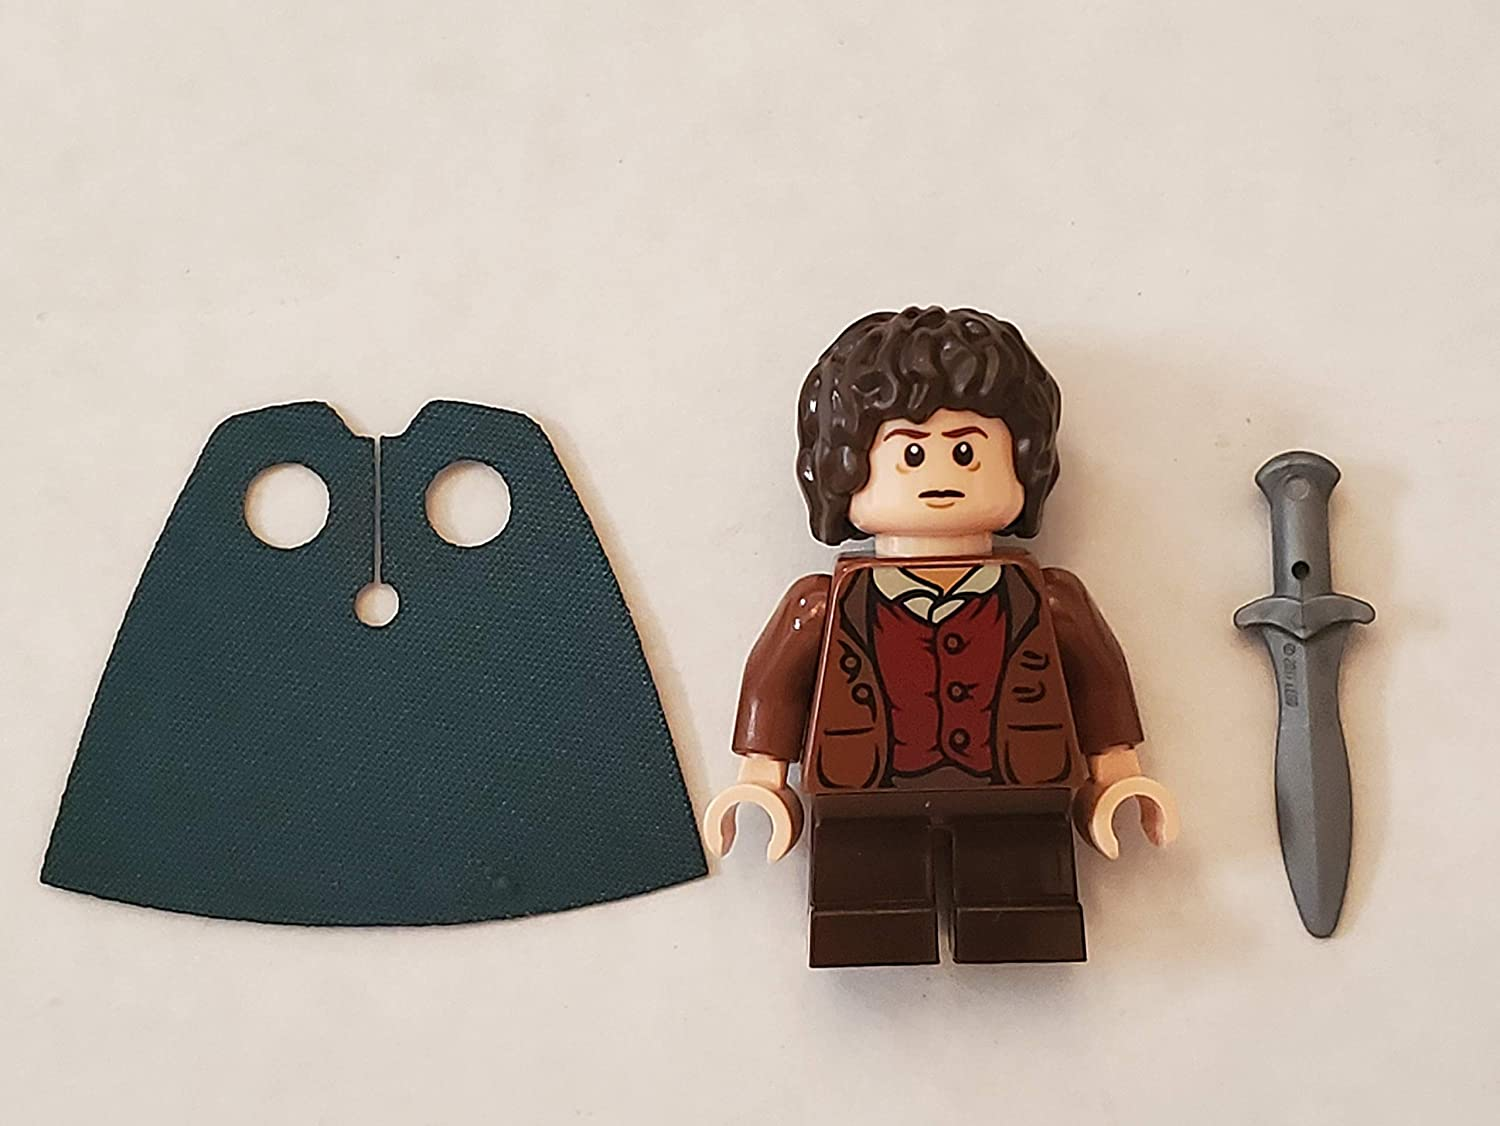 LEGO The Lord of the Rings: Frodo Baggins Minifigure with Green Cape